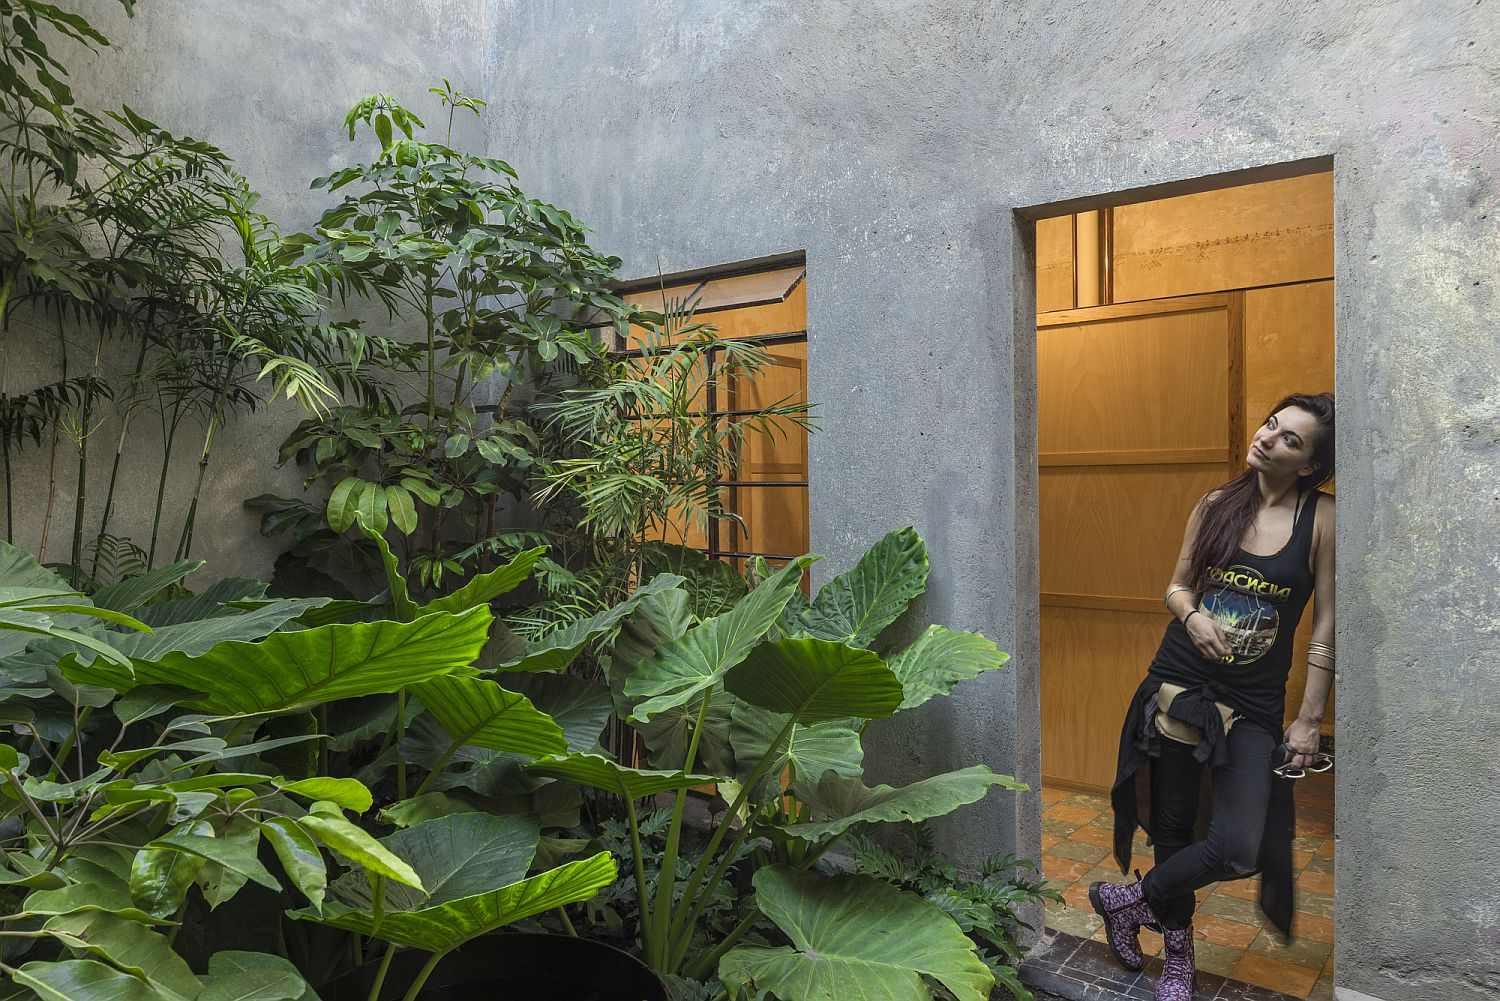 Interior courtyard of the revamped art gallery with plenty of greenery